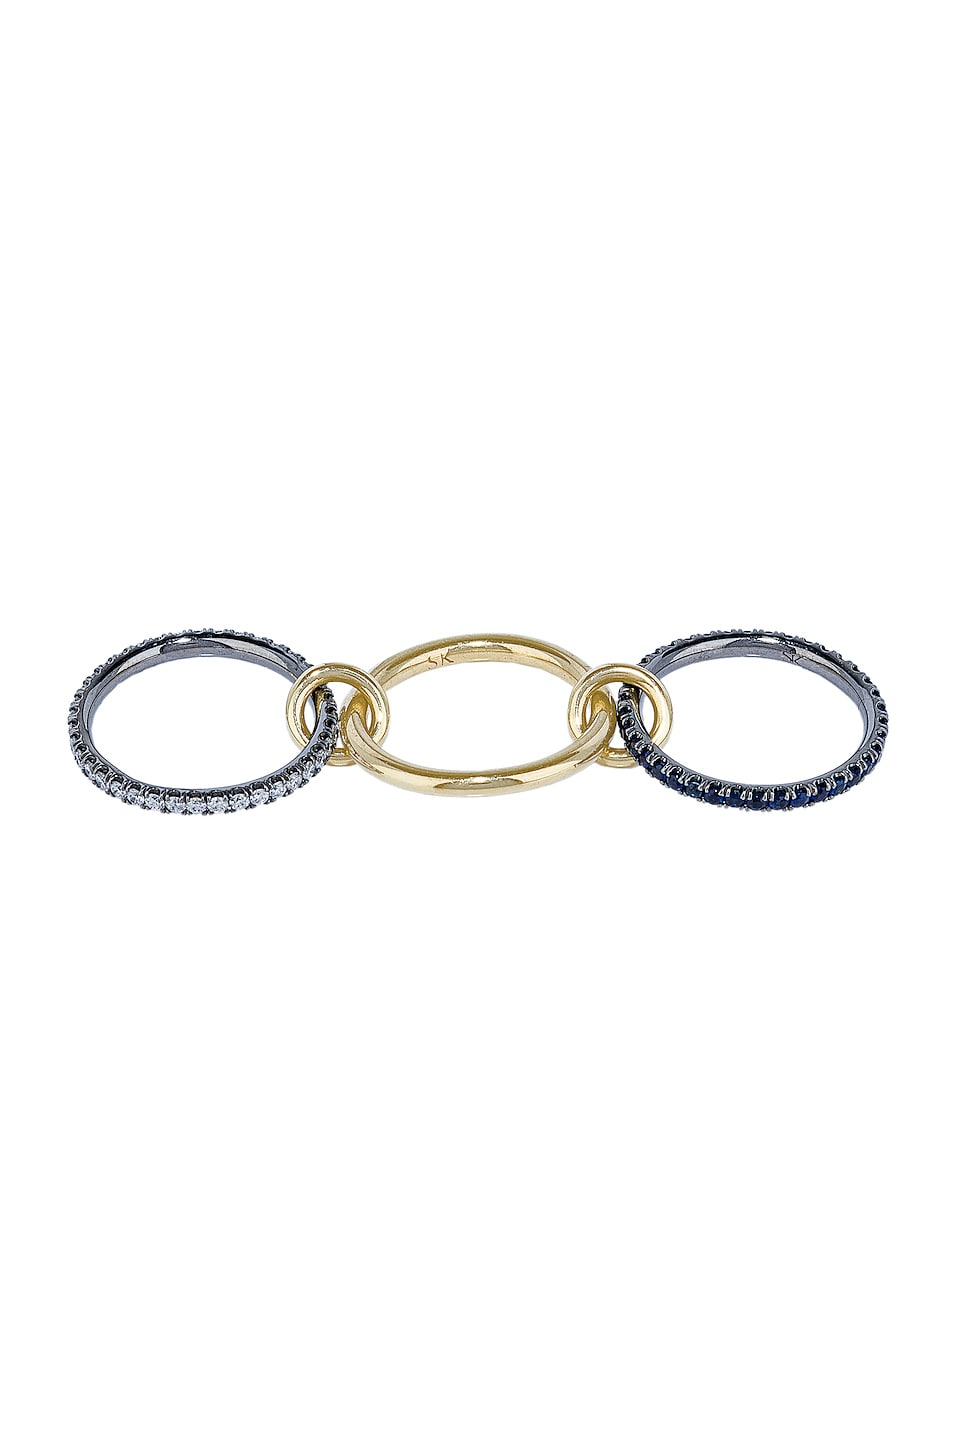 Image 4 of Spinelli Kilcollin Celeste Sapphire Ring in 18K Yellow Gold